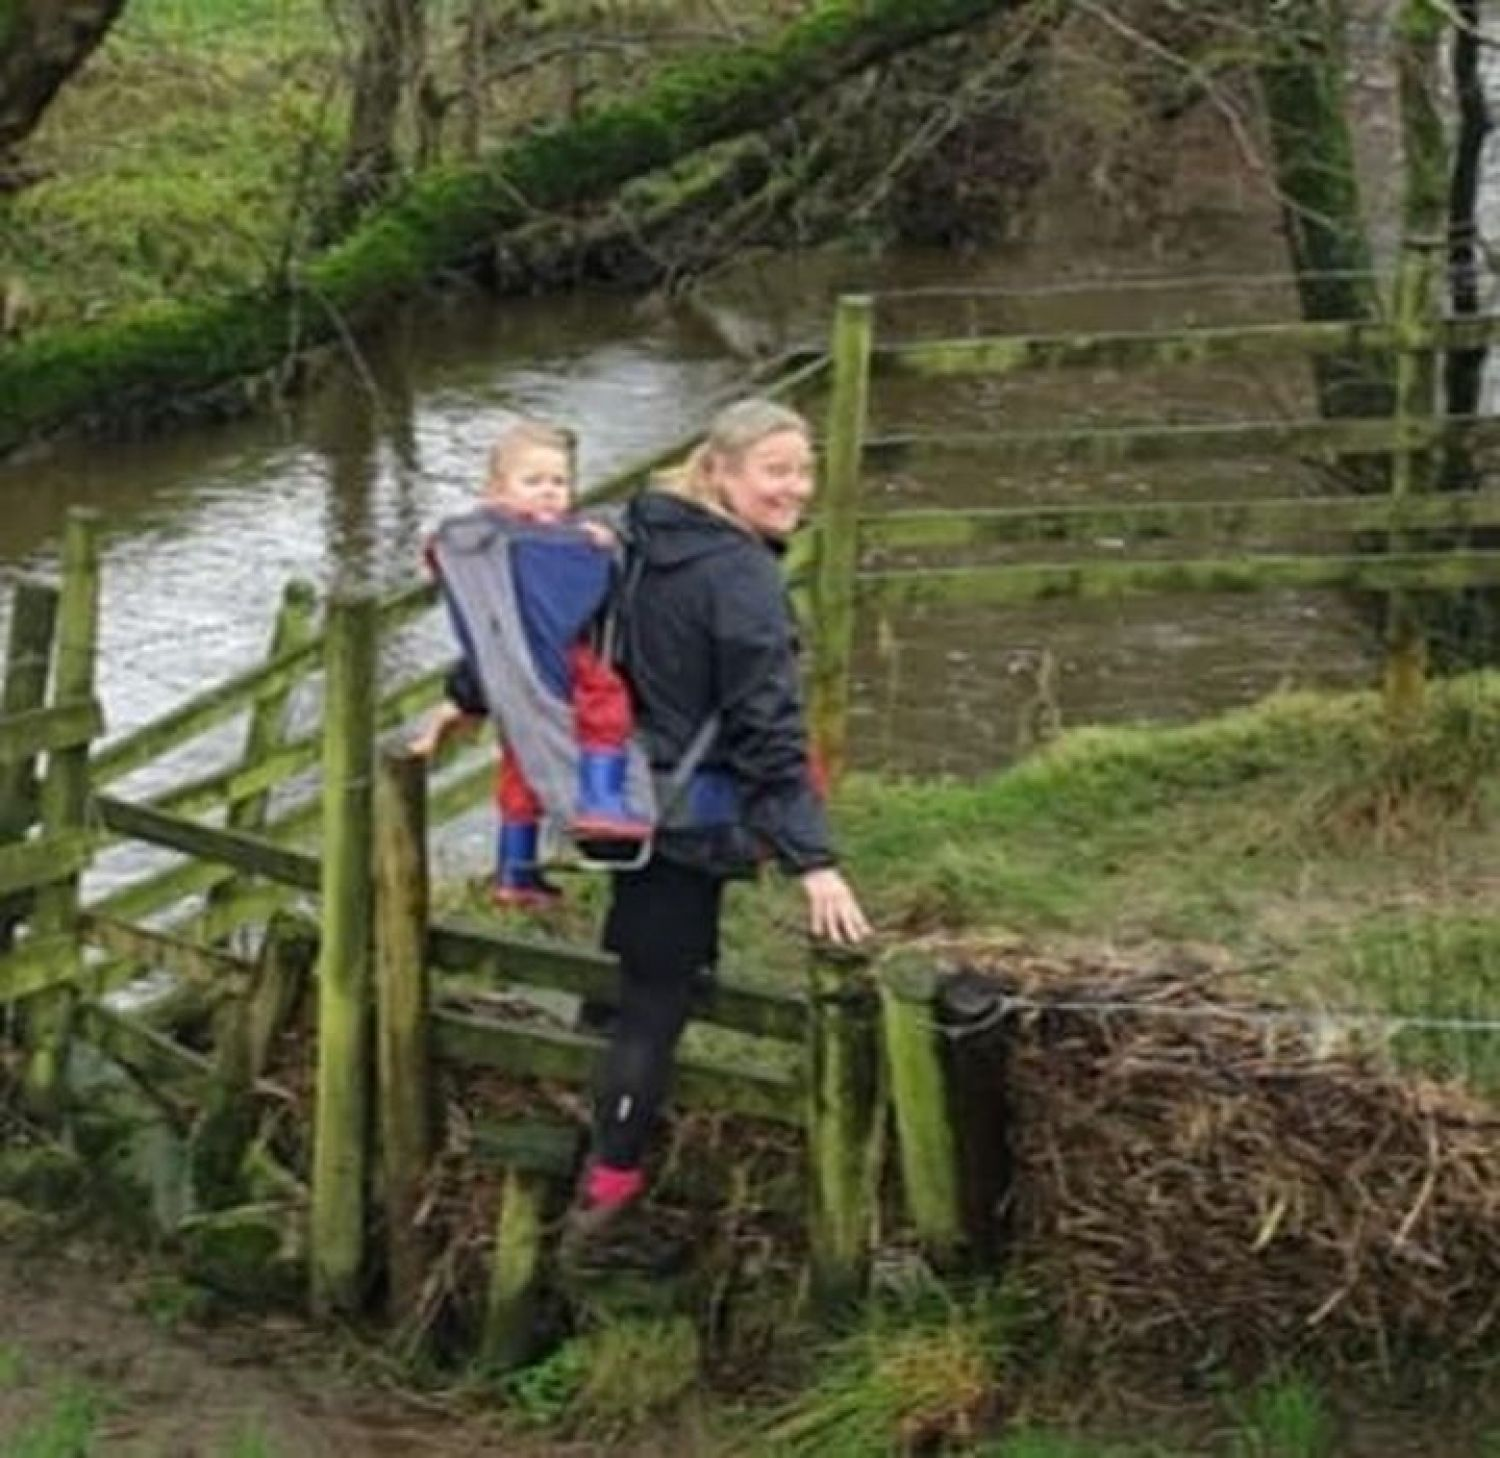 Brave mum walks for charity for the good of young people